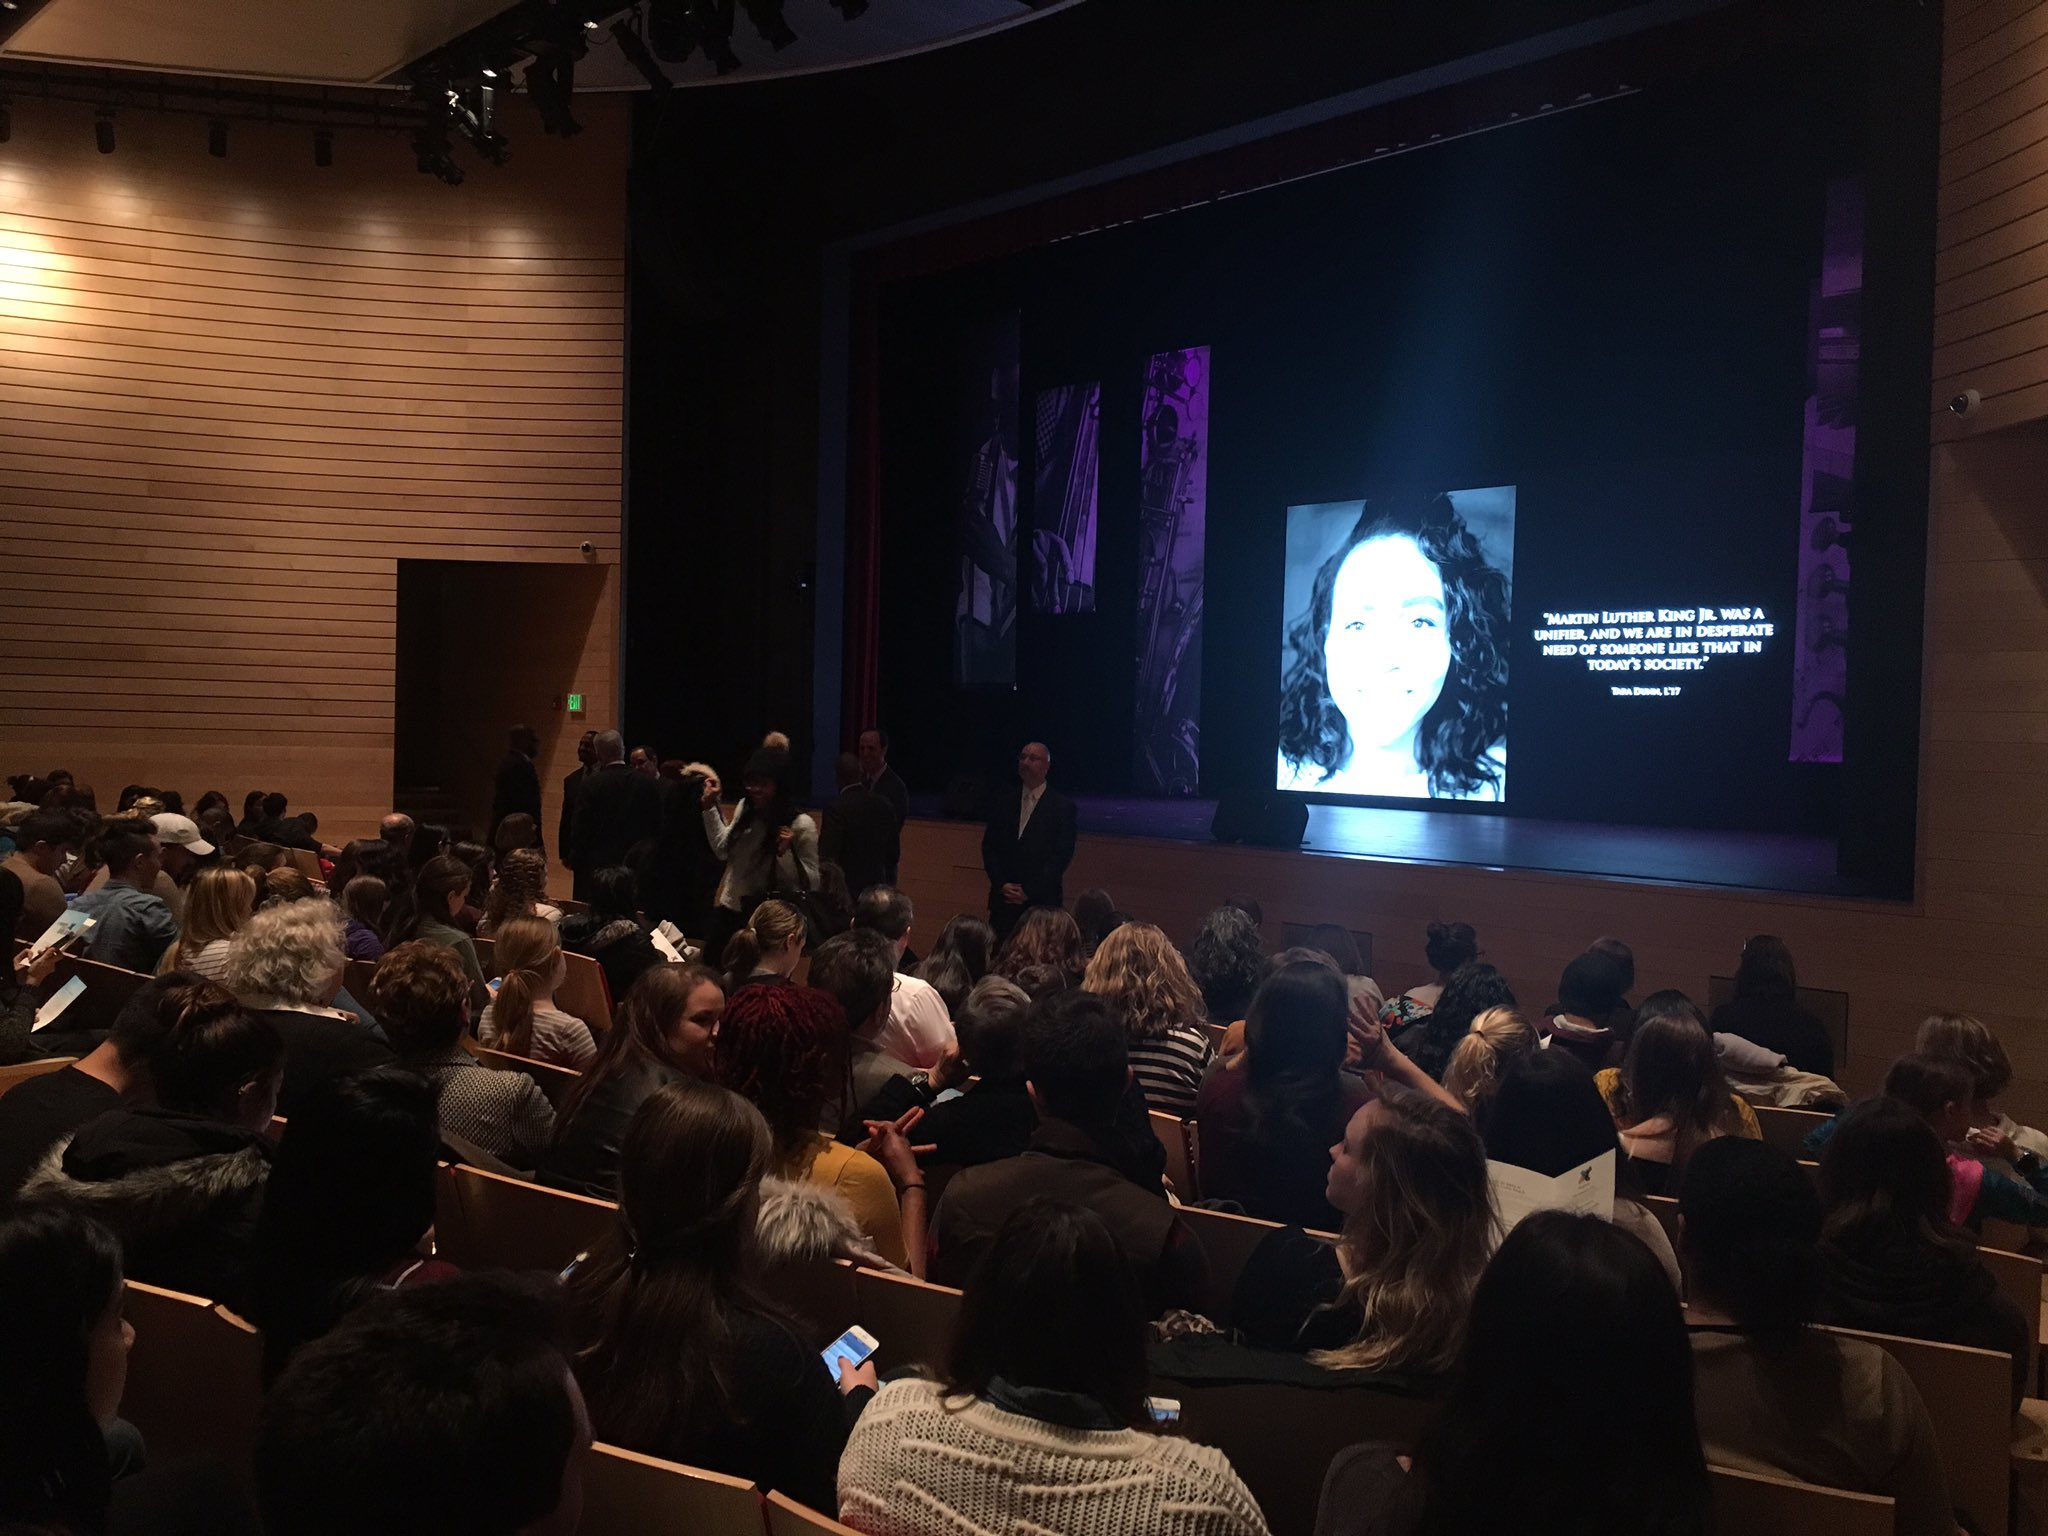 Blackman is filling up @Northeastern! We're excited for 'A Tribute to the Dream' featuring @reneeelisegolds #MLK https://t.co/r9aKs22GkP